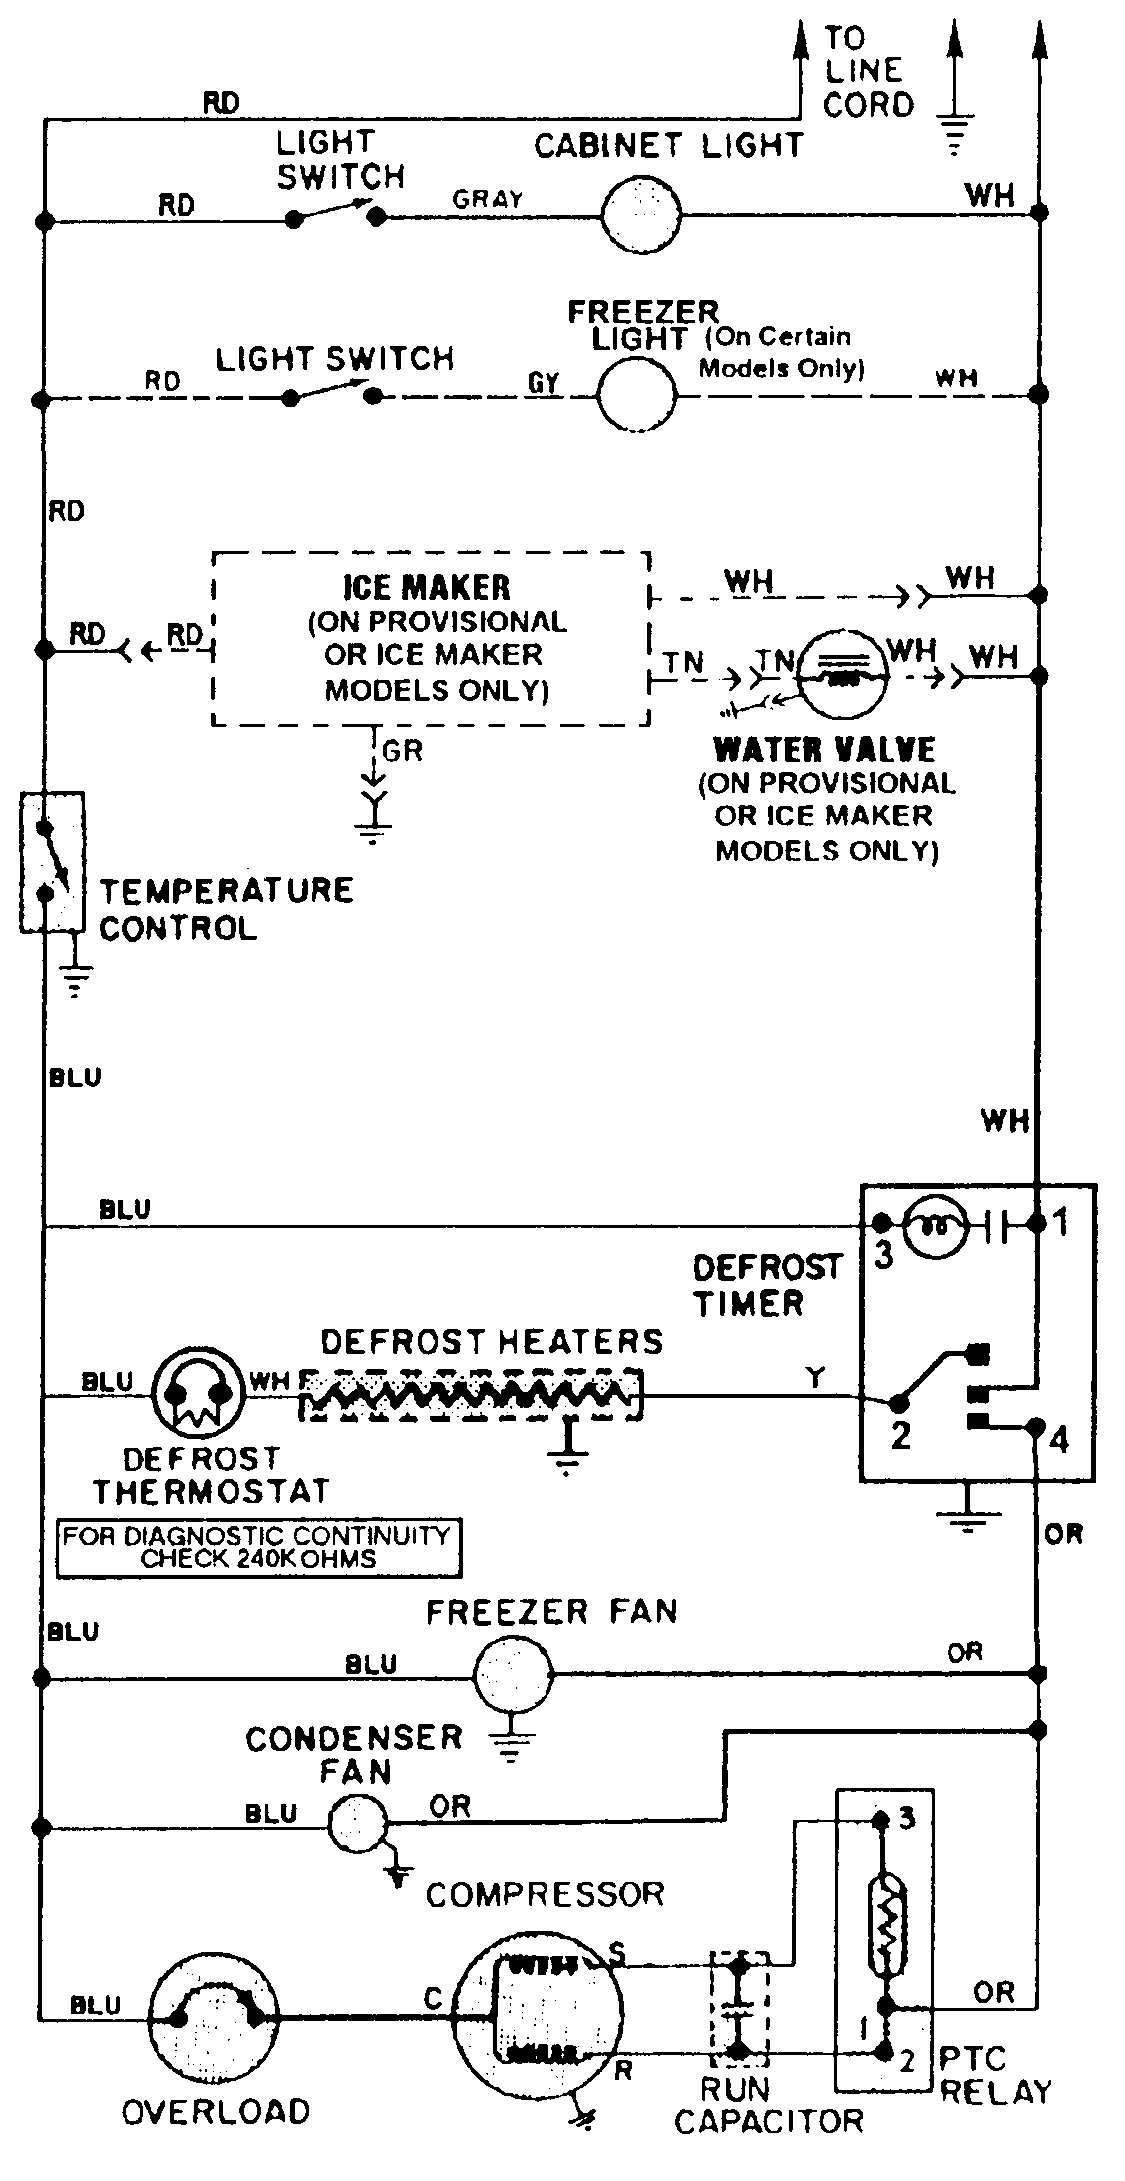 hight resolution of magic chef defrost timer wiring diagram